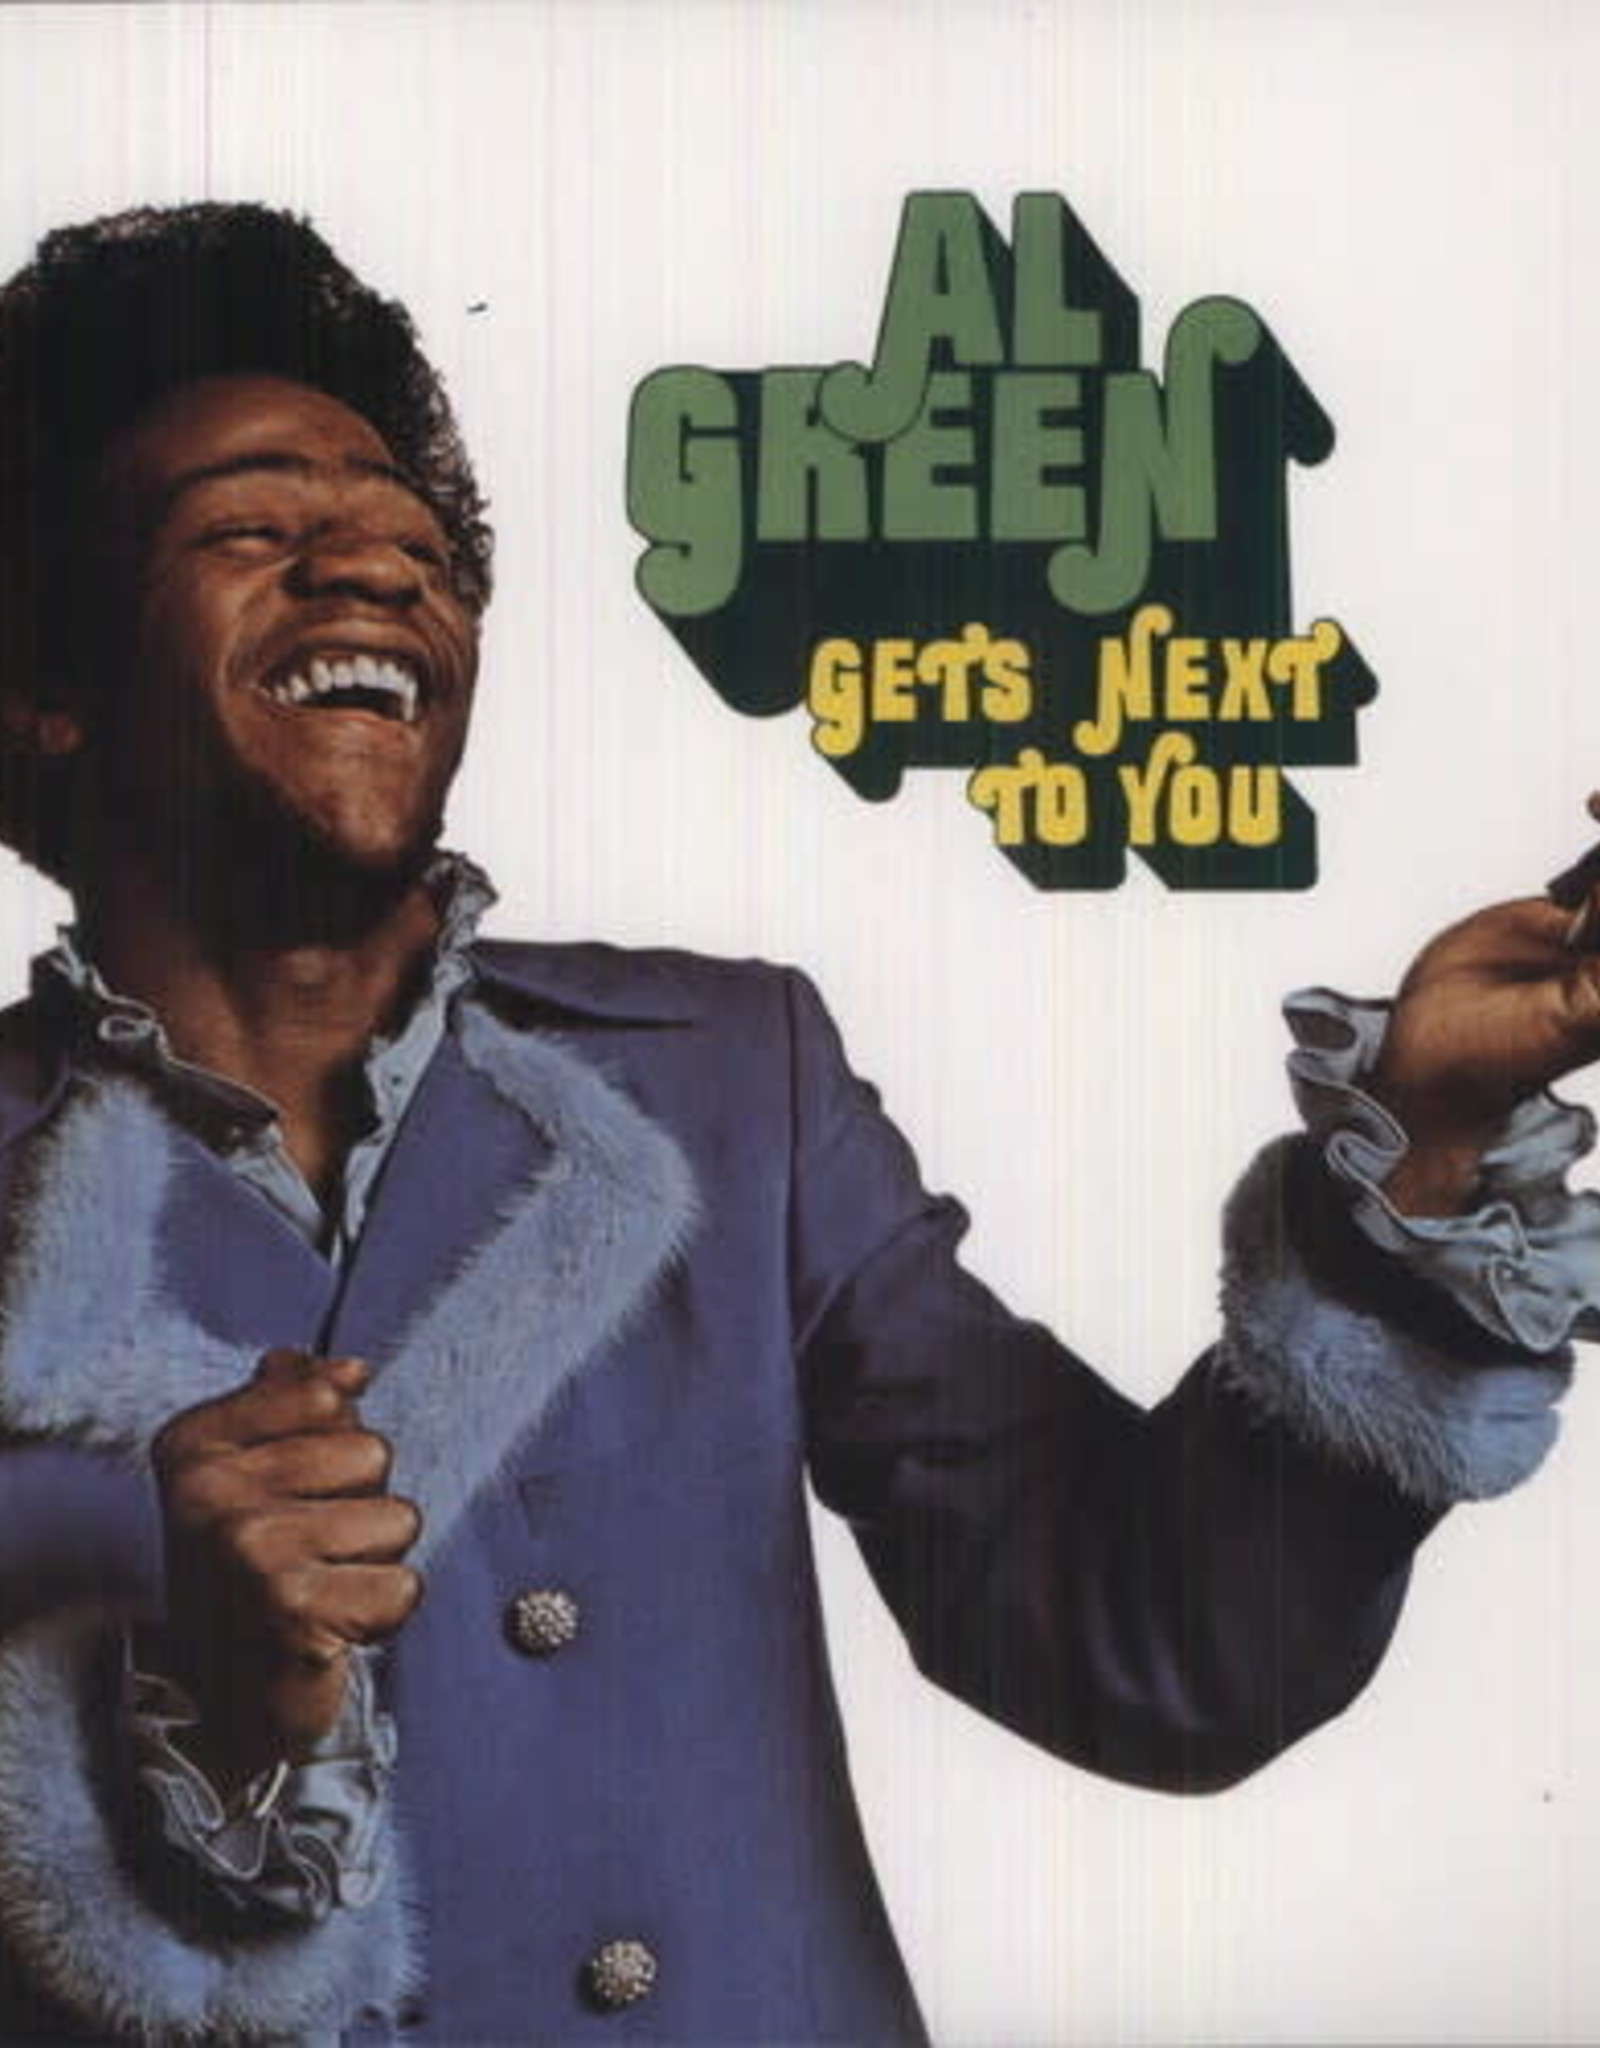 Al Green - Gets Next To You